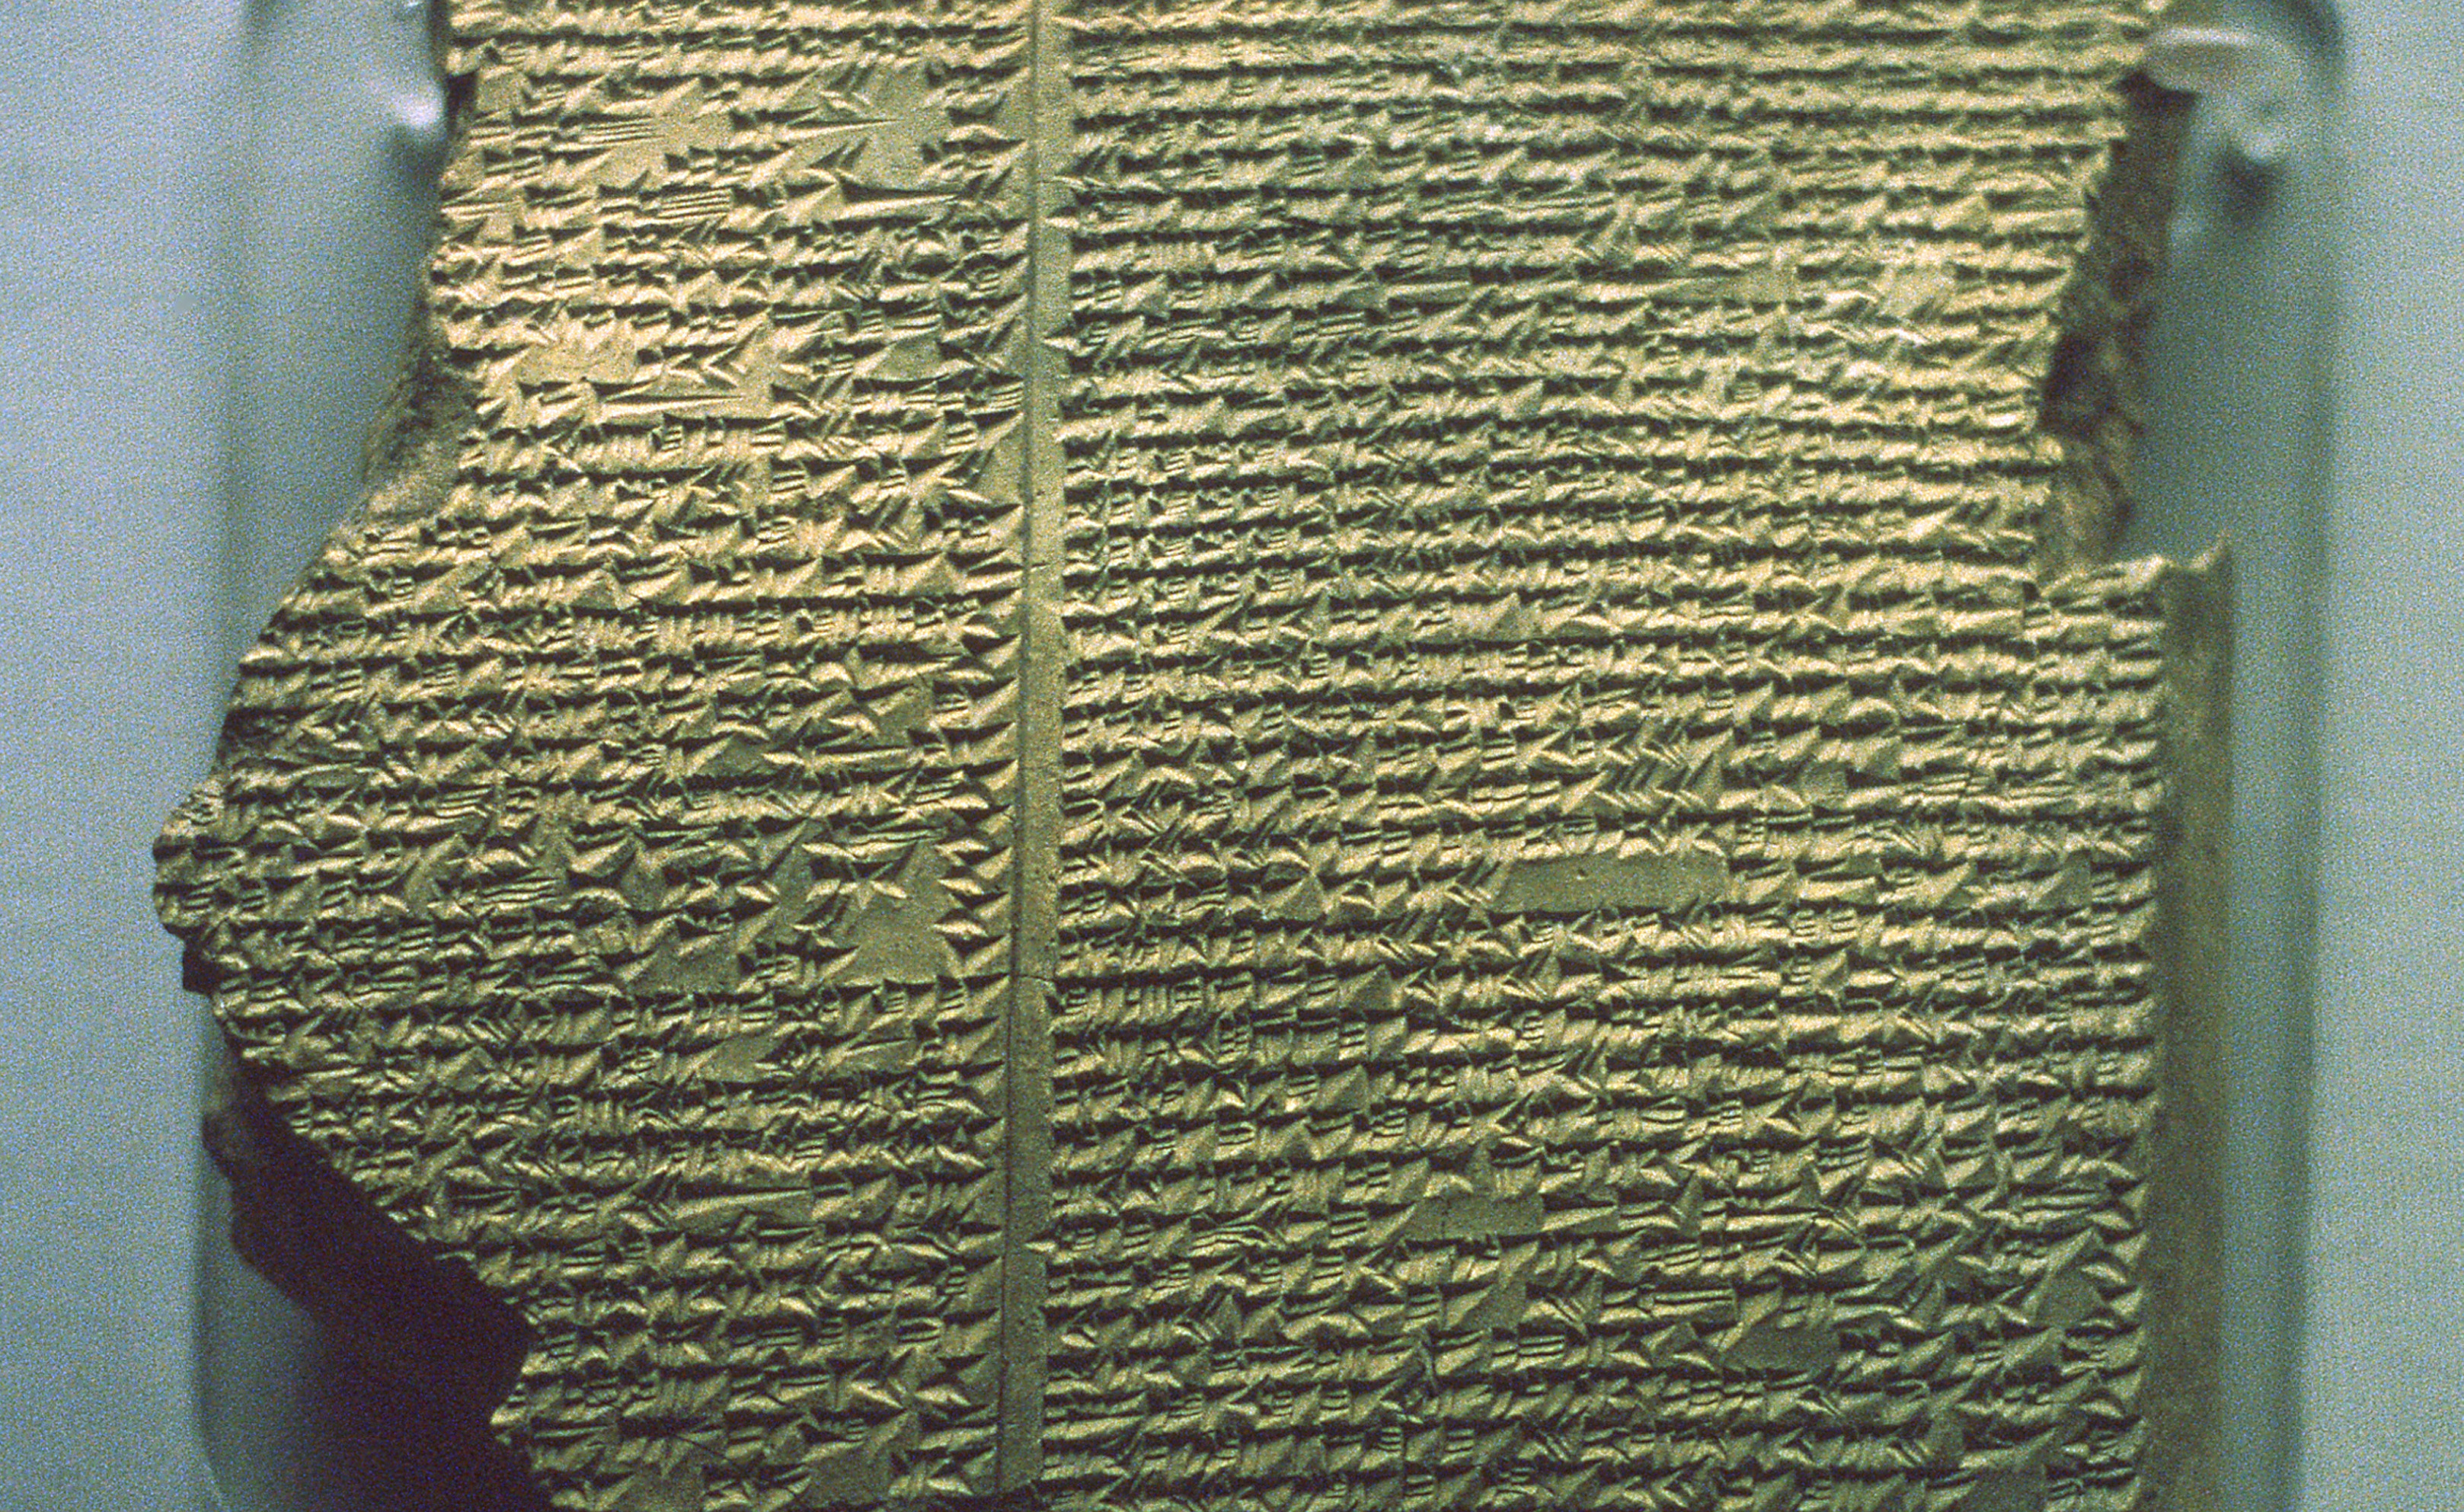 US Obtains Gilgamesh Tablet After Court Orders Forfeiture From Hobby Lobby